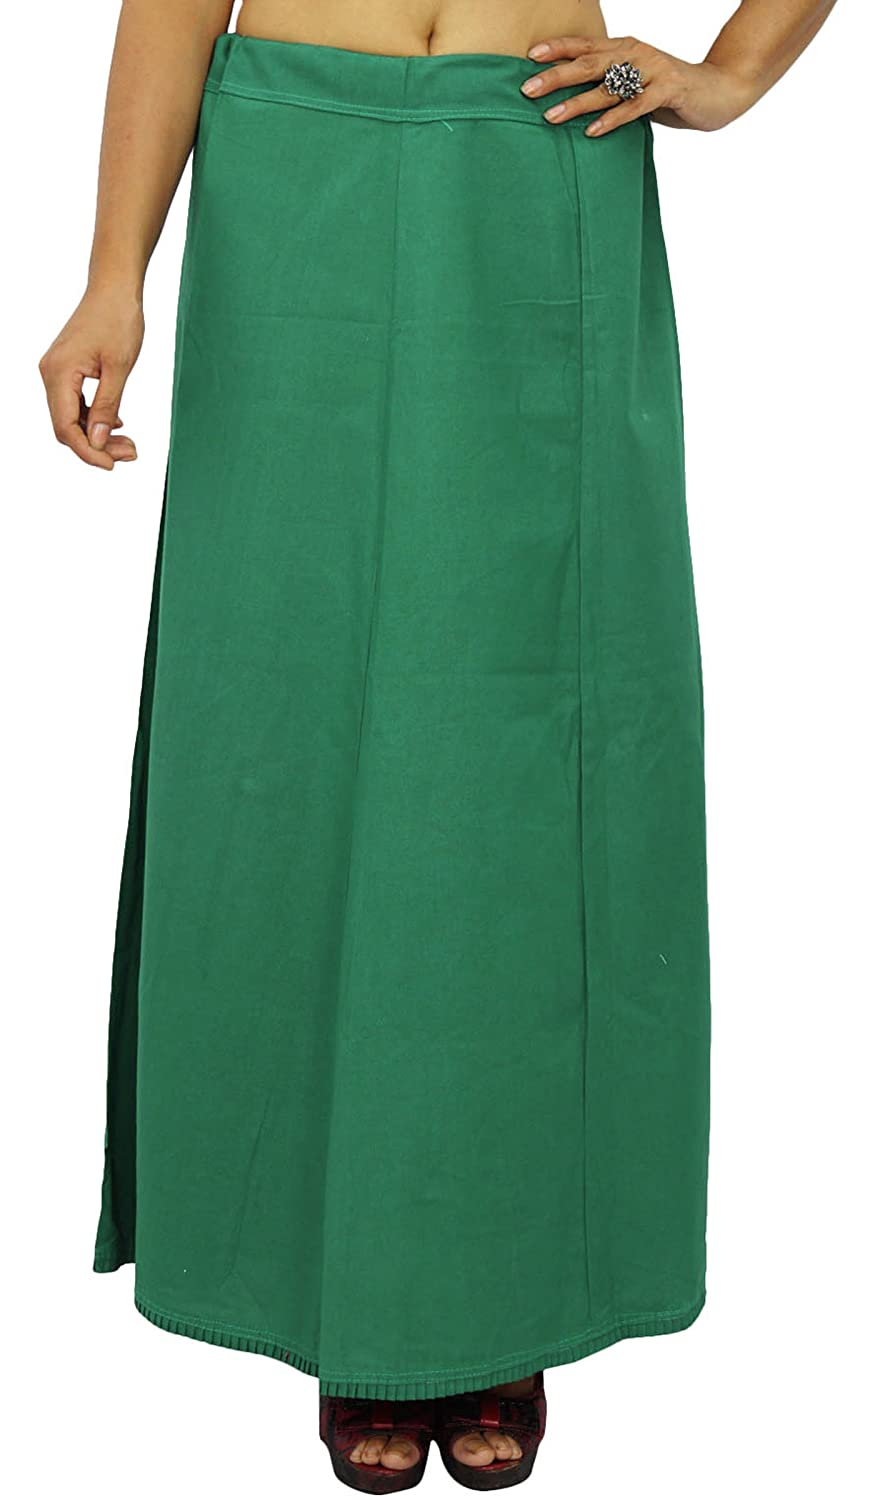 Inskirt Lining For Sari Ethnic Indian Ready-Made Solid Cotton Petticoat